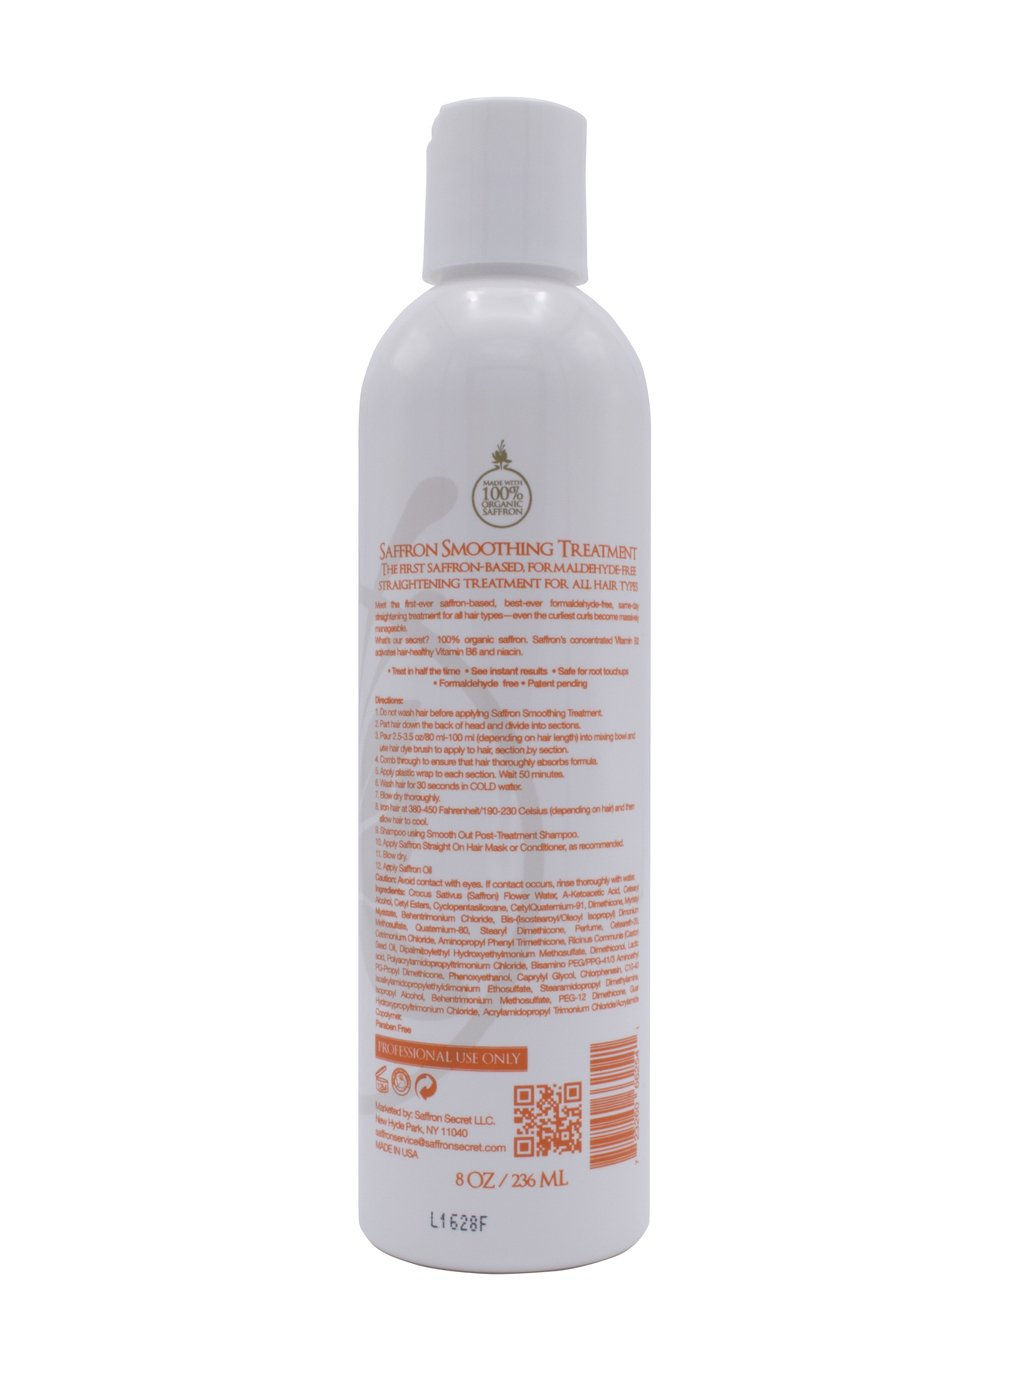 Saffron Smoothing Treatment - Formaldehyde Free (8 oz)